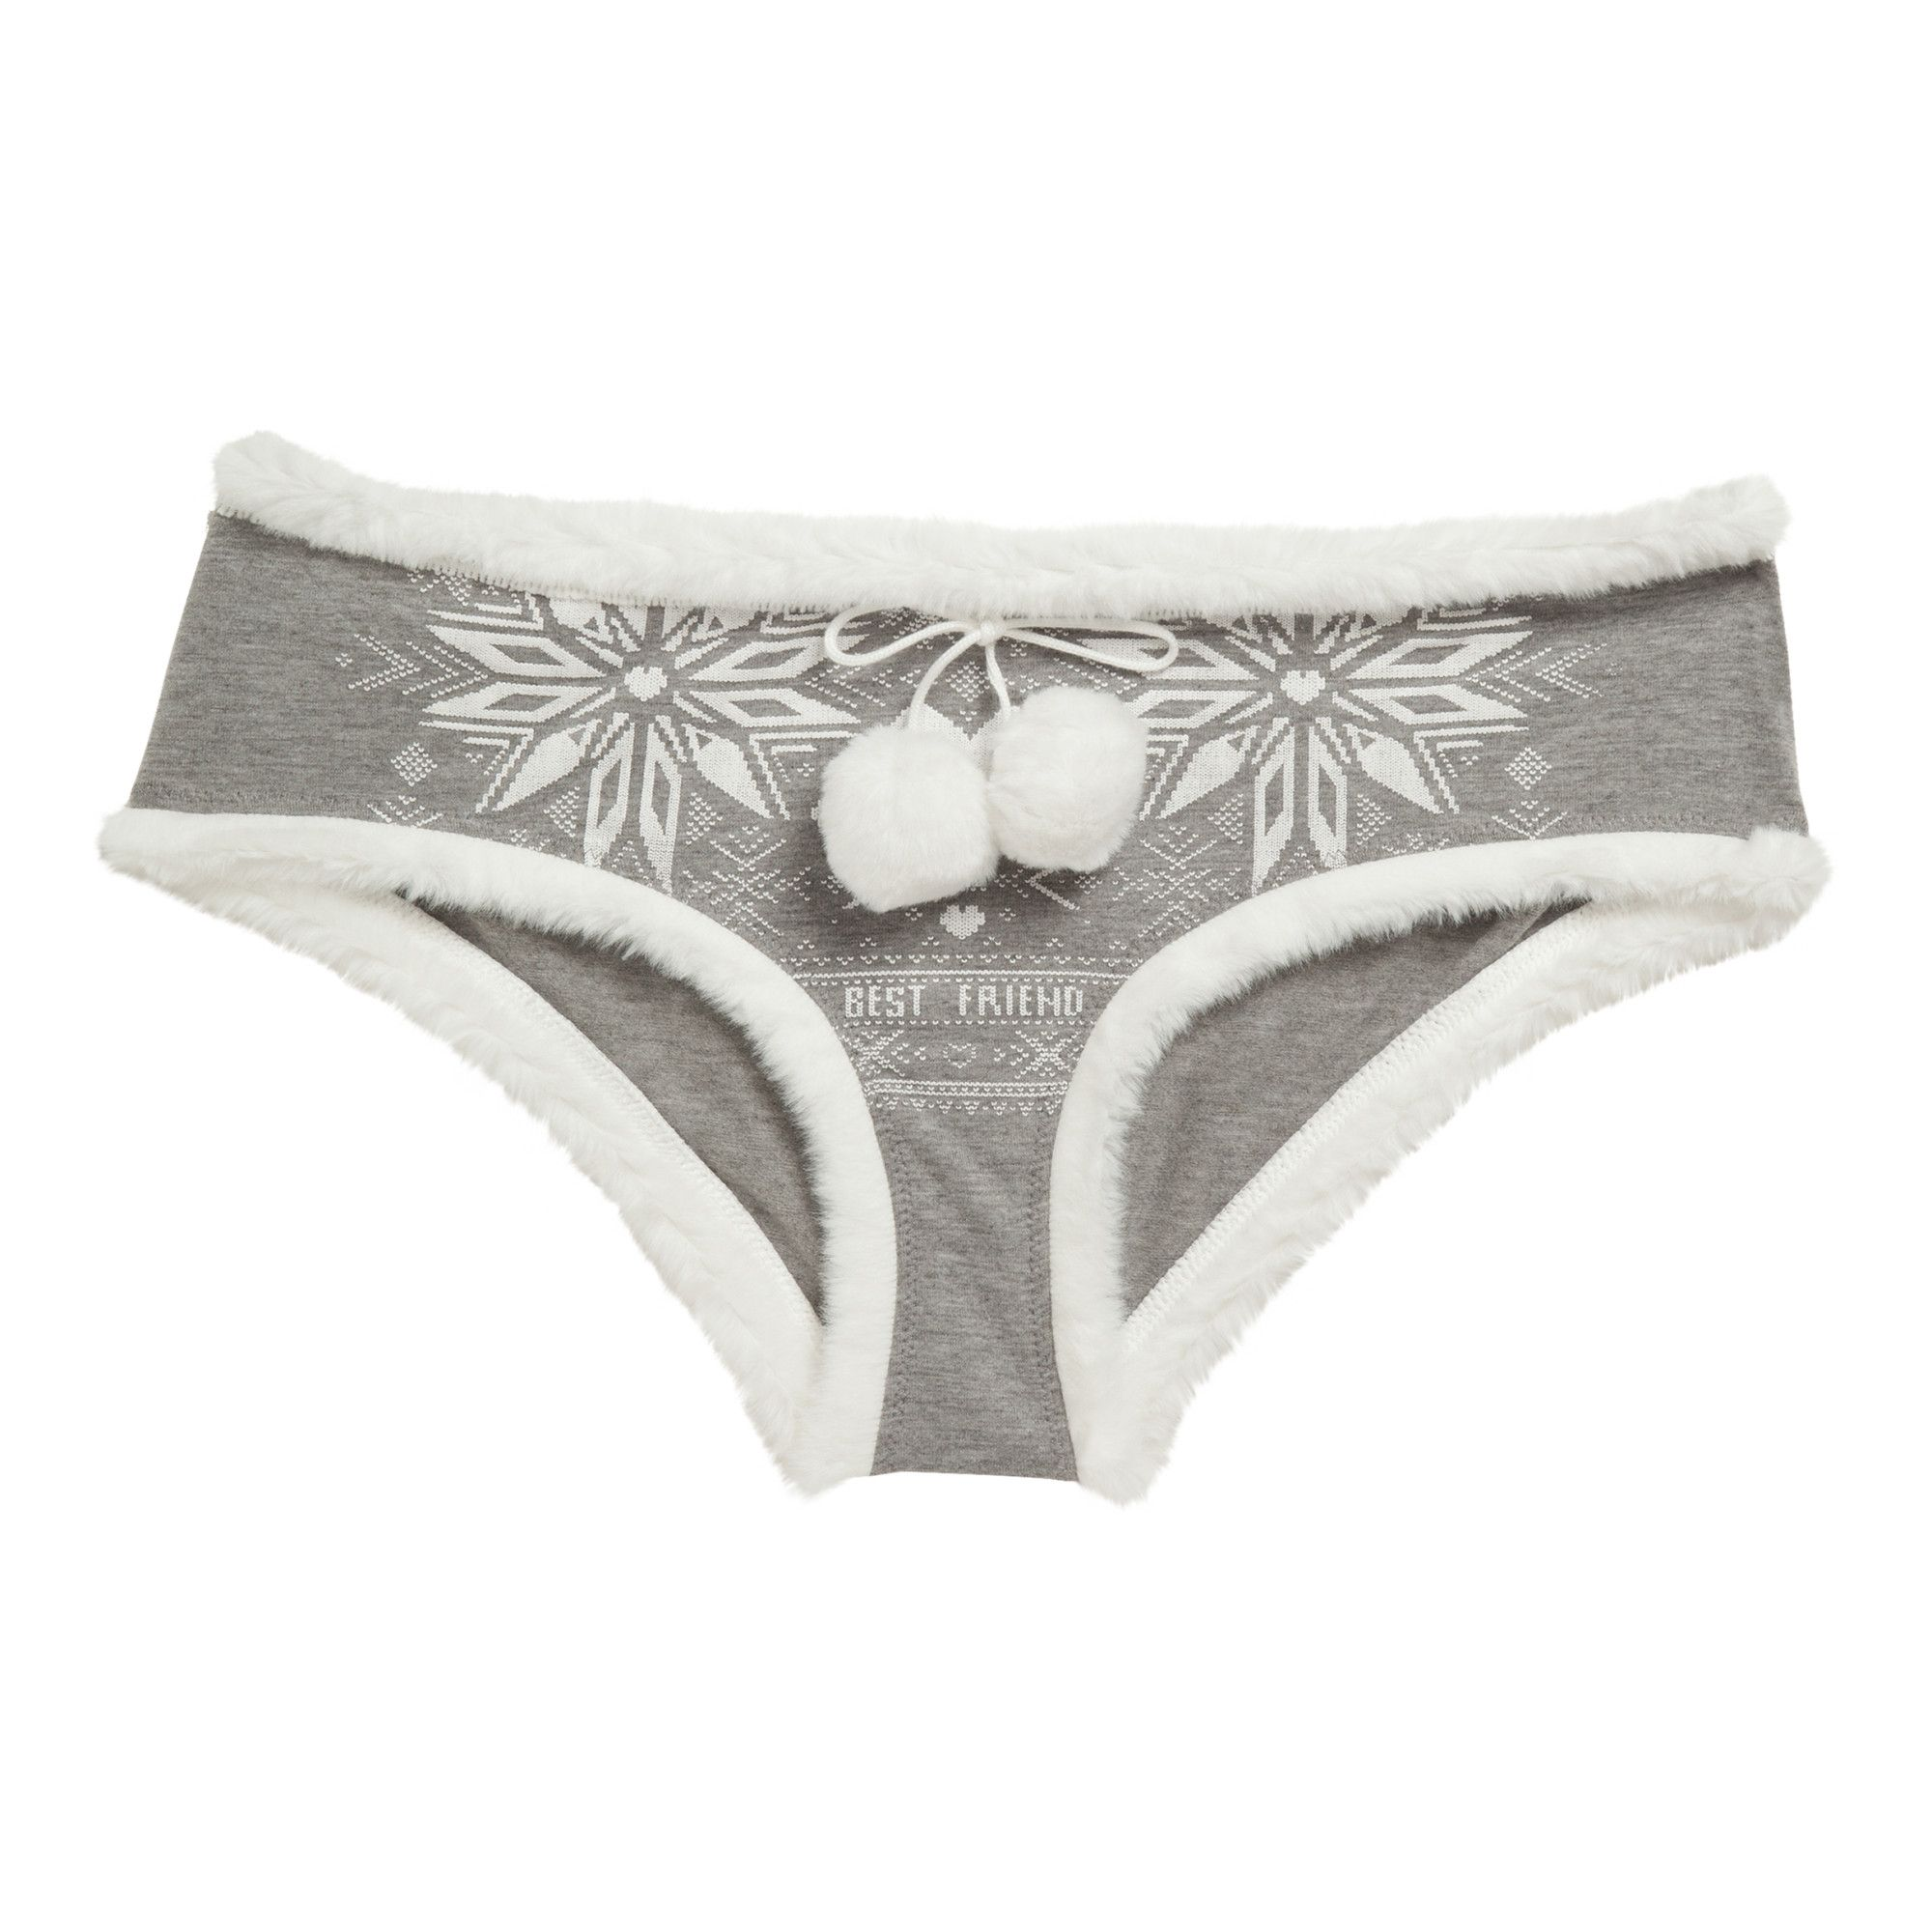 34ec157683bb44 Winter panties UNDIZ   Lingerie   Lingerie, Vetements et Shorty